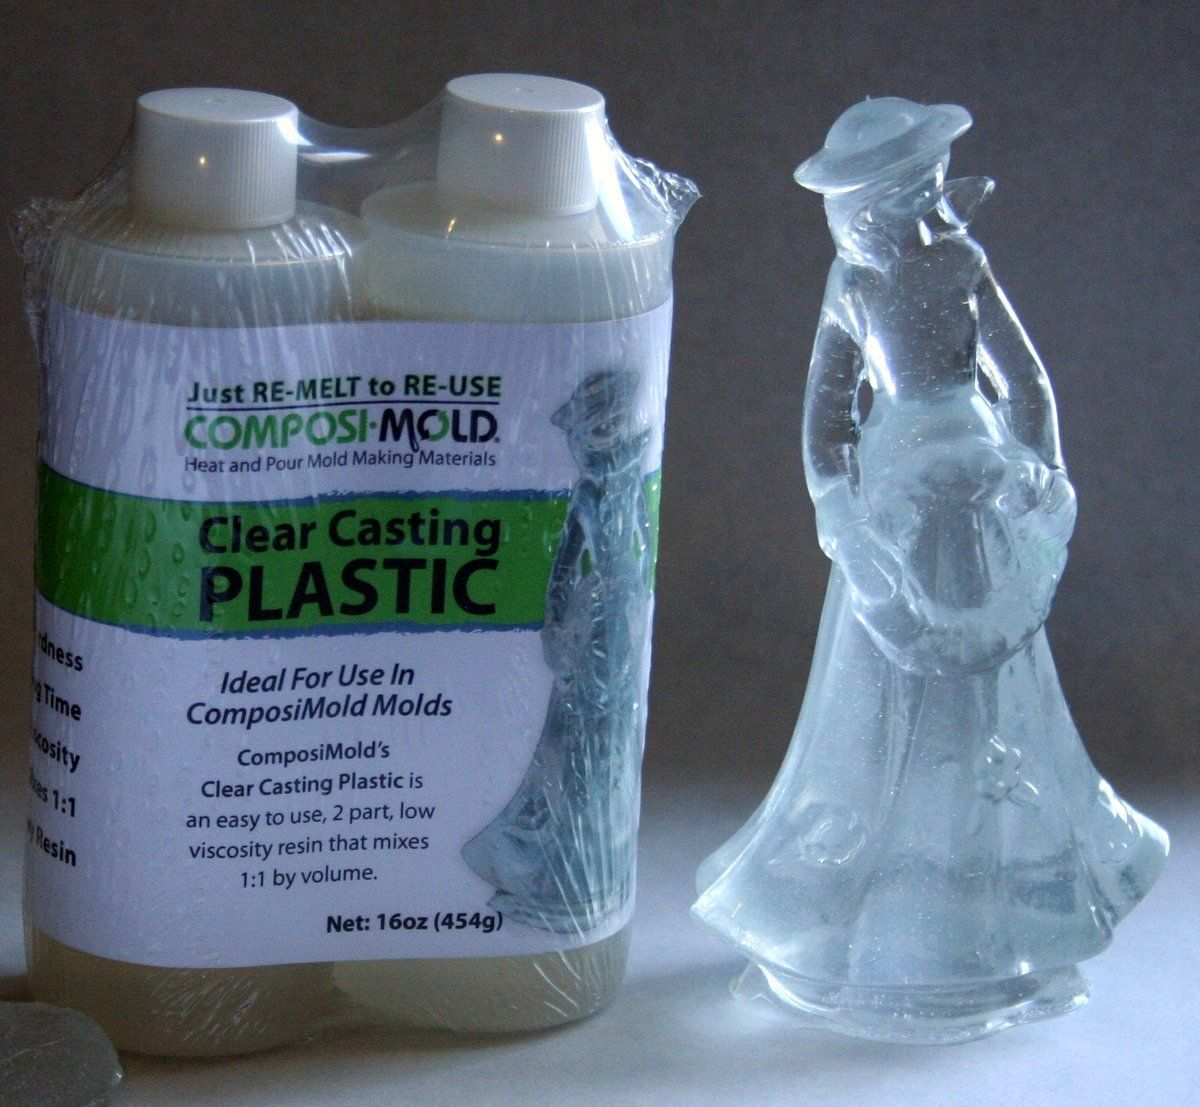 Composicast Clear Casting Plastic Epoxy Resin 8 Or 16 Fluid Oz Options Mold Making Diy Resin Crafts Diy Silicone Molds